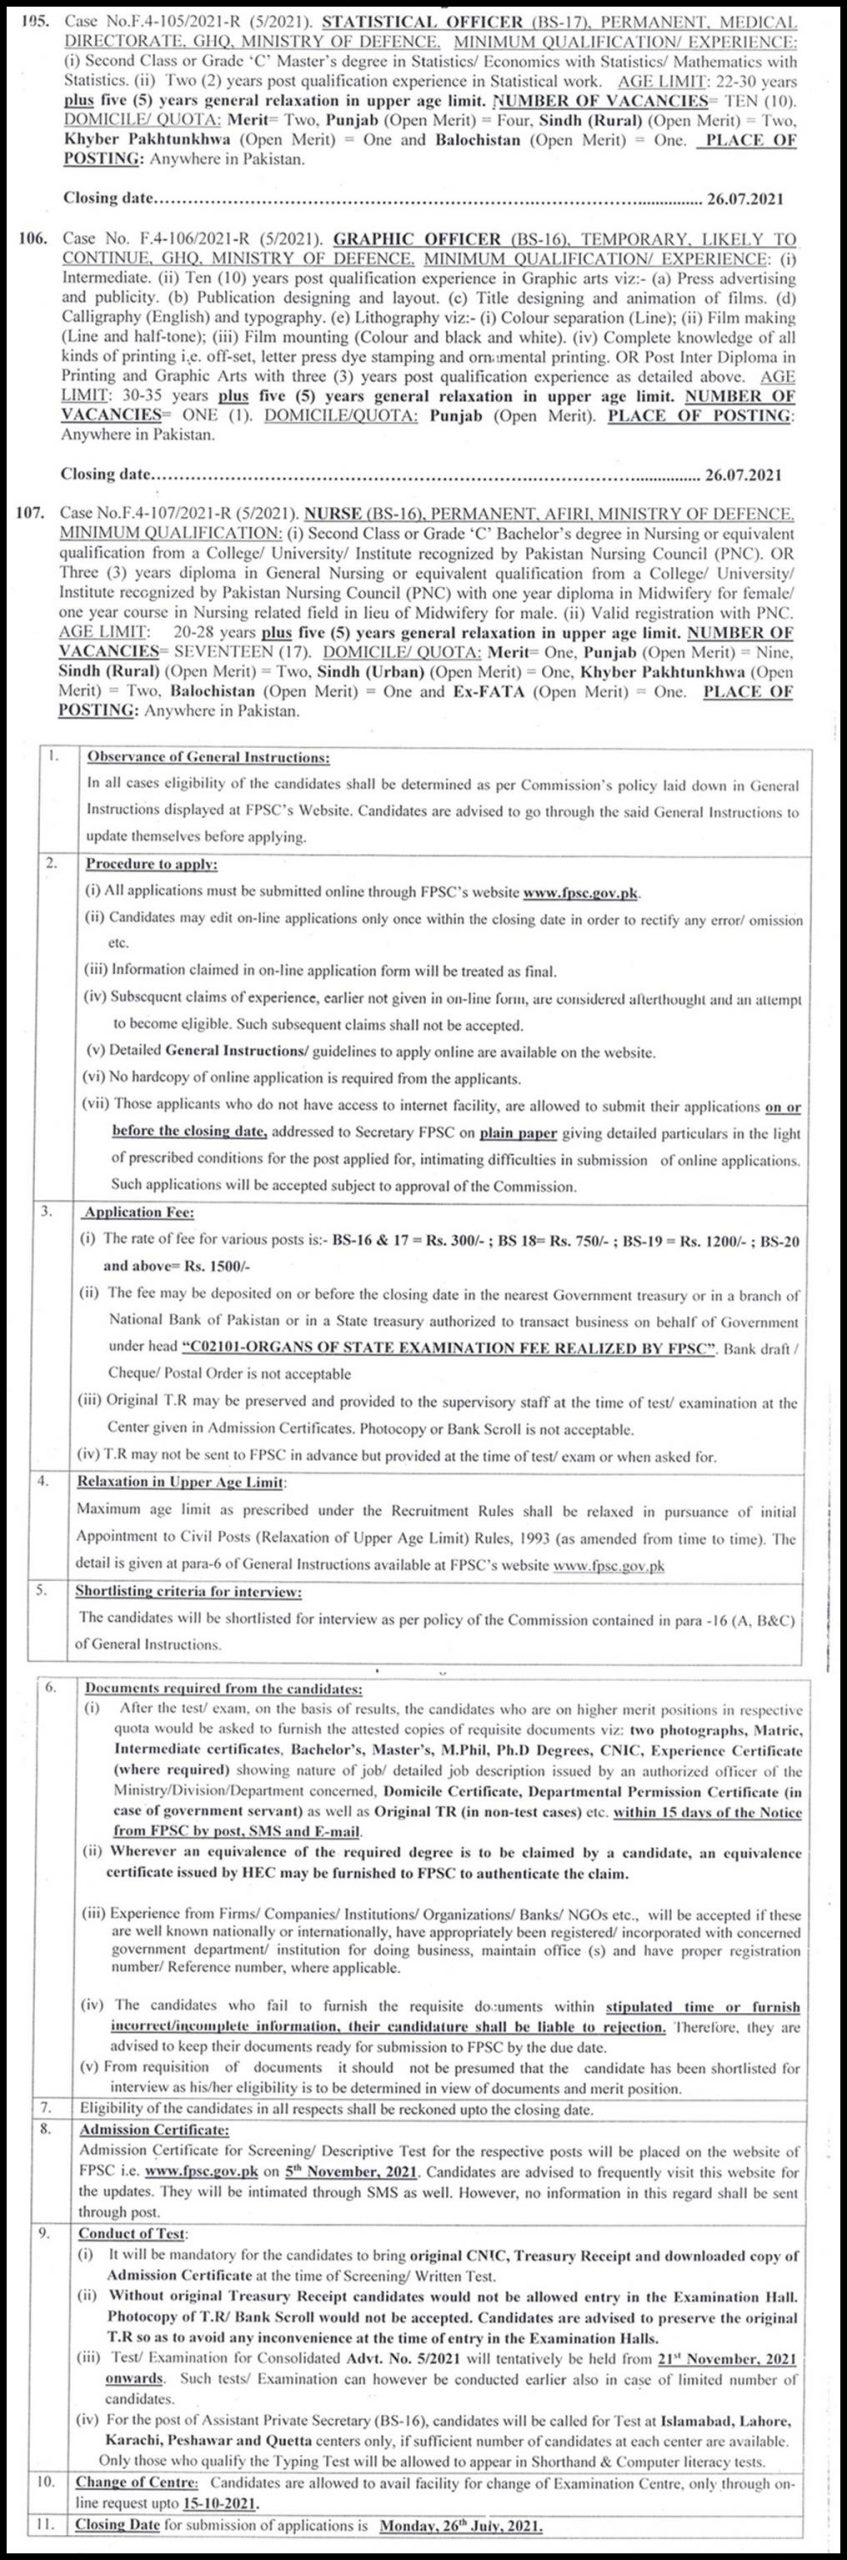 GHQ Ministry of Defence FPSC Jobs 2021 Online Registration Schedule and Dates